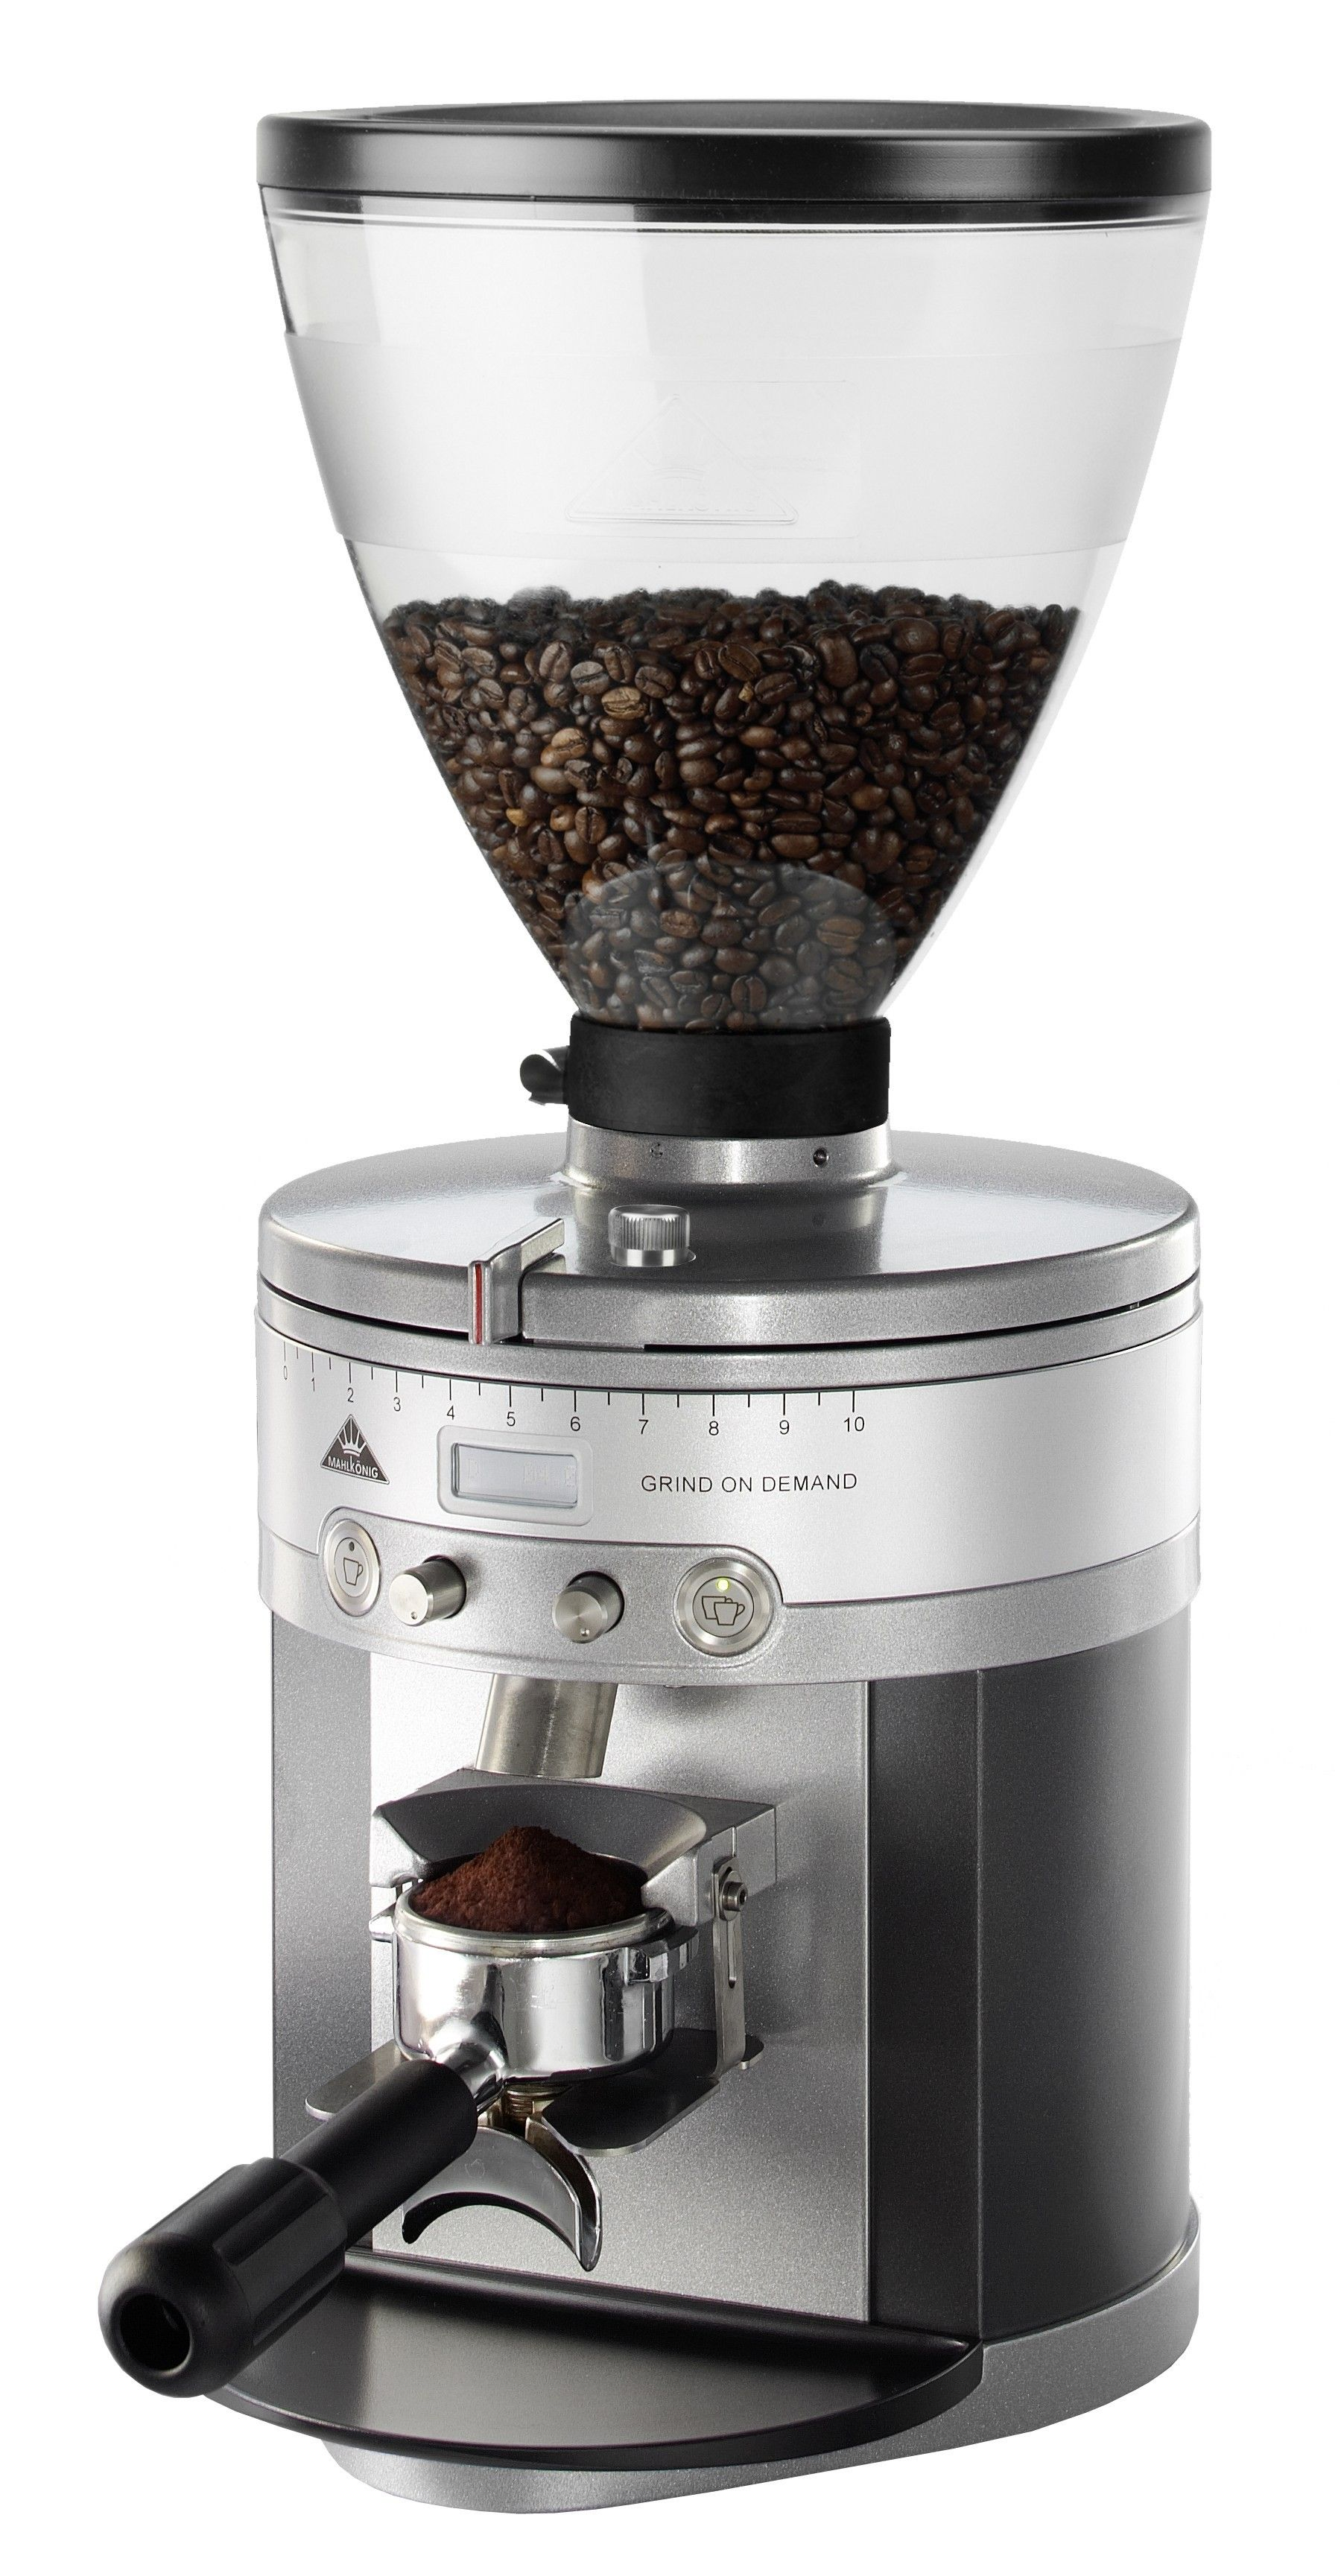 Coffee Makers in the Workplace Best coffee grinder